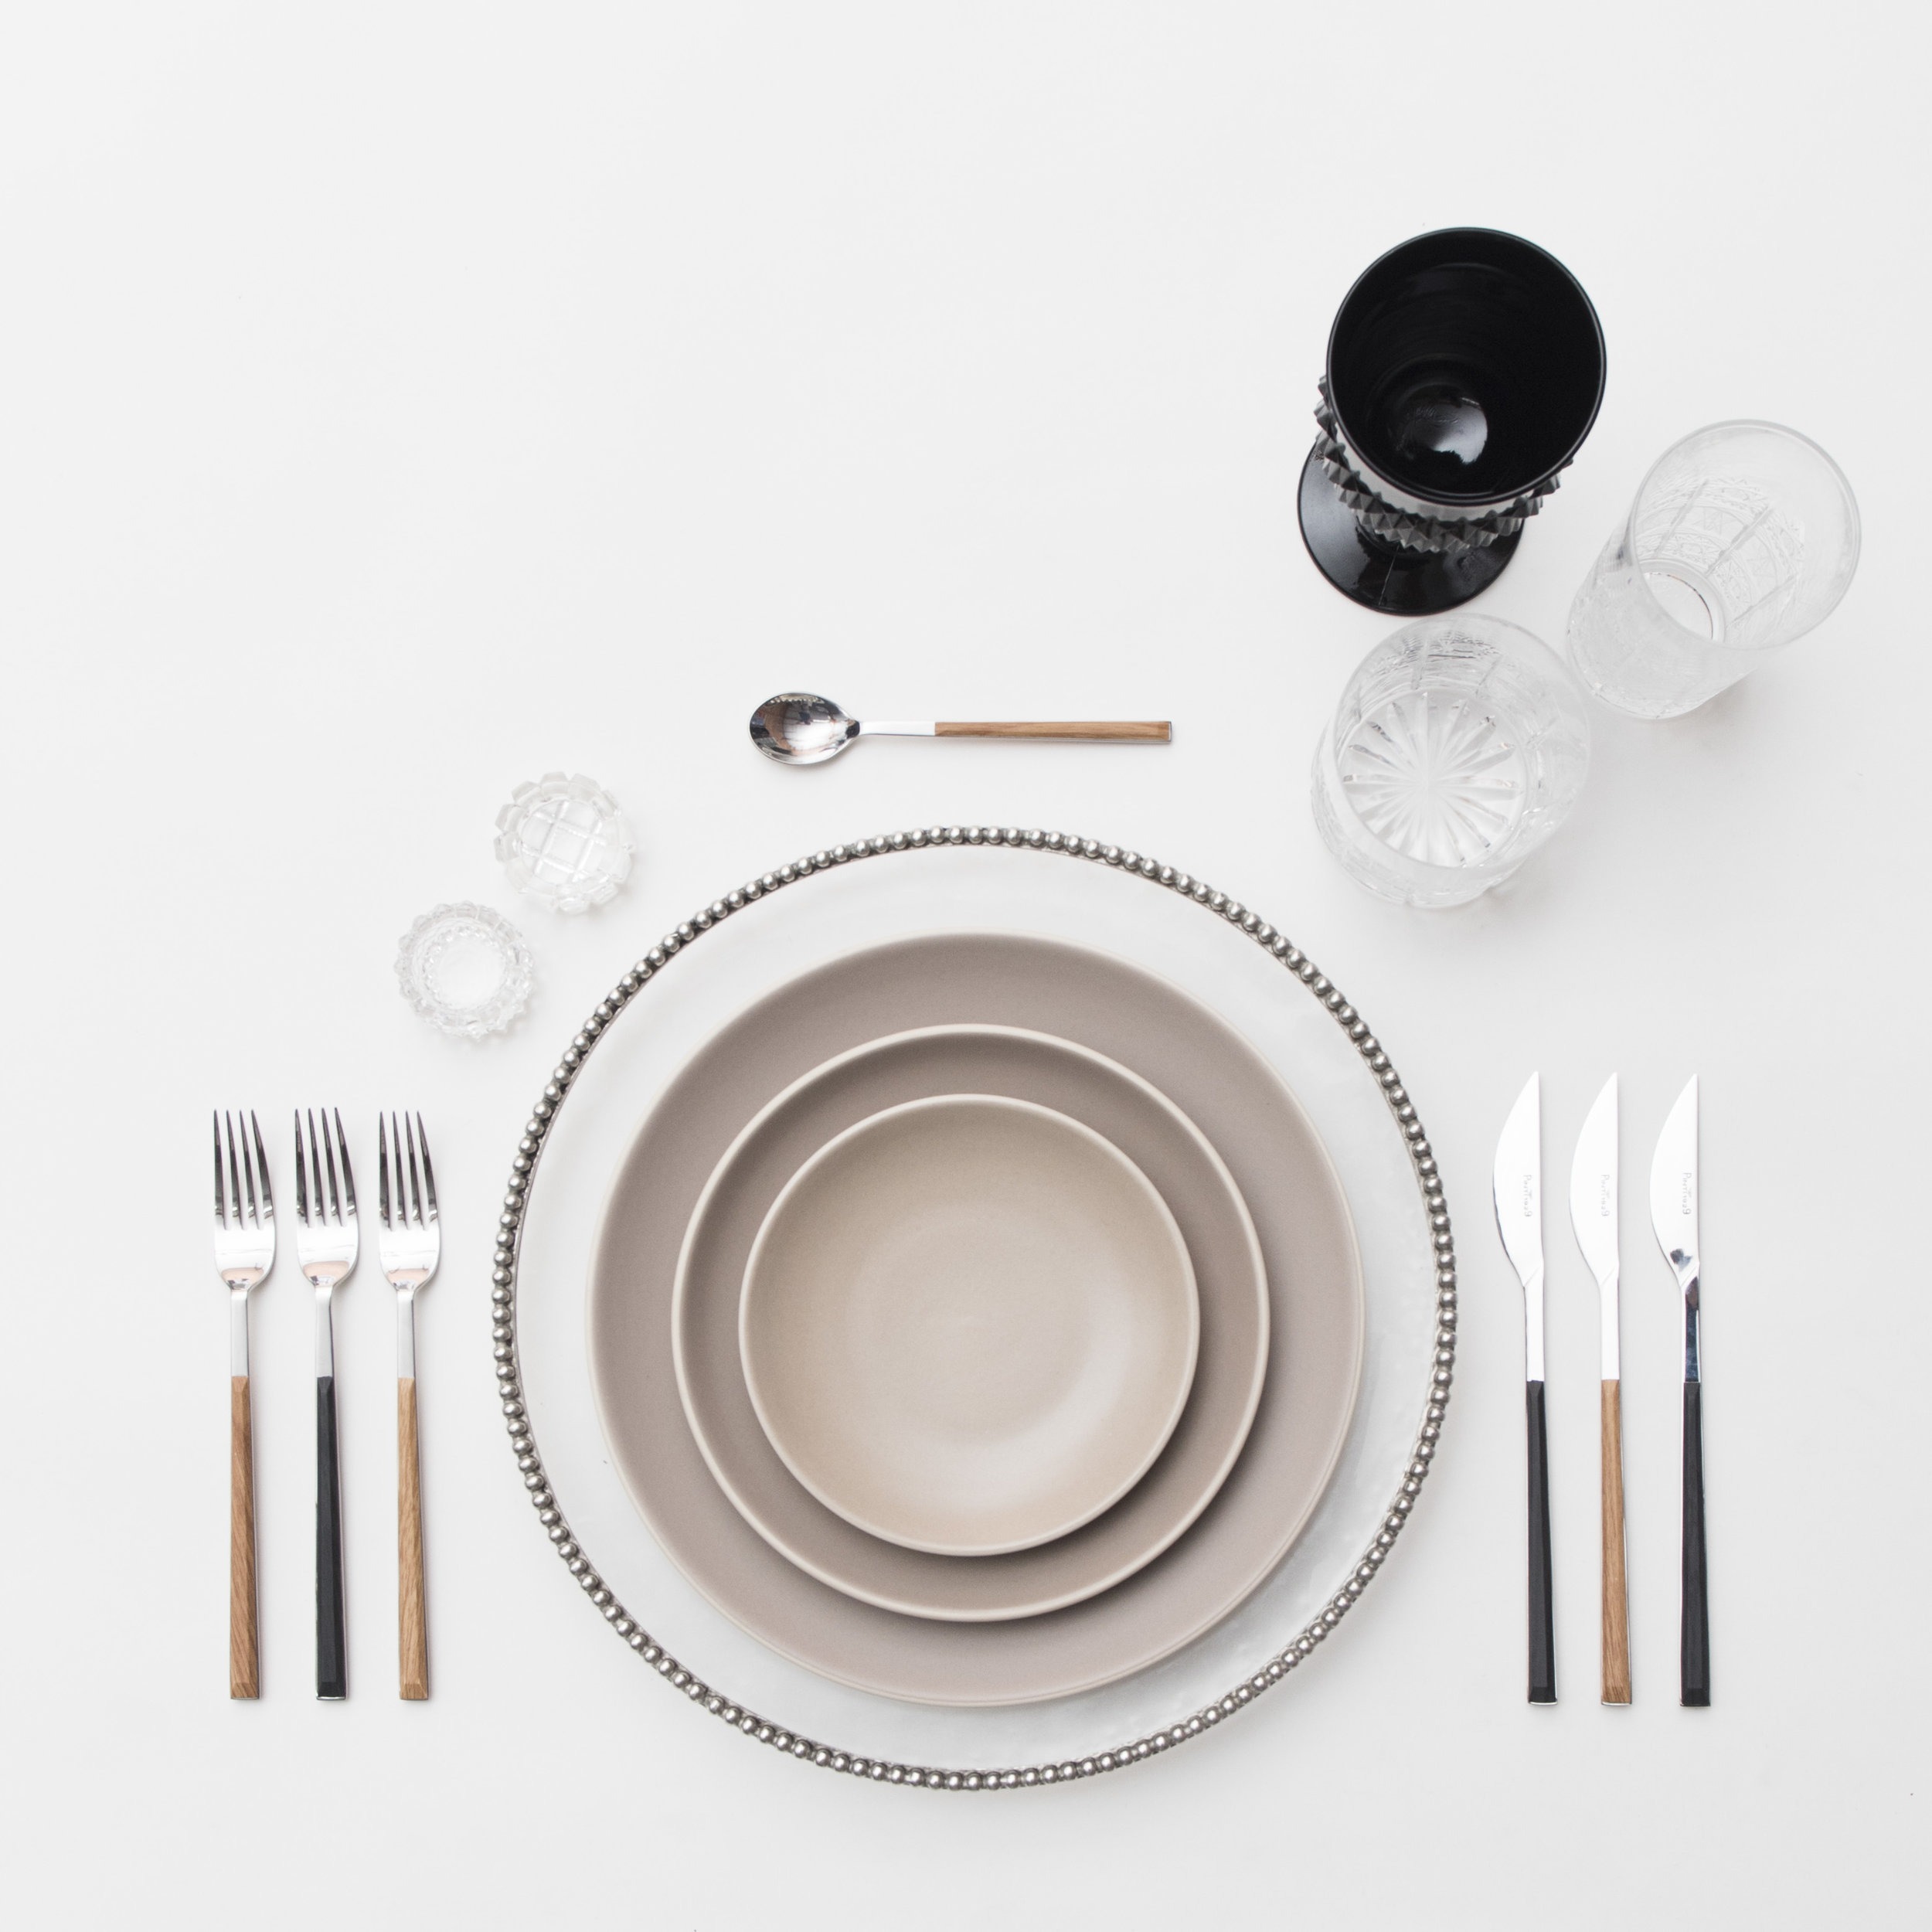 RENT: Pav é Glass  Chargers in Pewter + Heath Ceramics in French Grey + Danish Flatware in Teak/Ebony + Black Vintage Goblets + Czech Crystal Glassware + Antique Crystal Salt Cellars